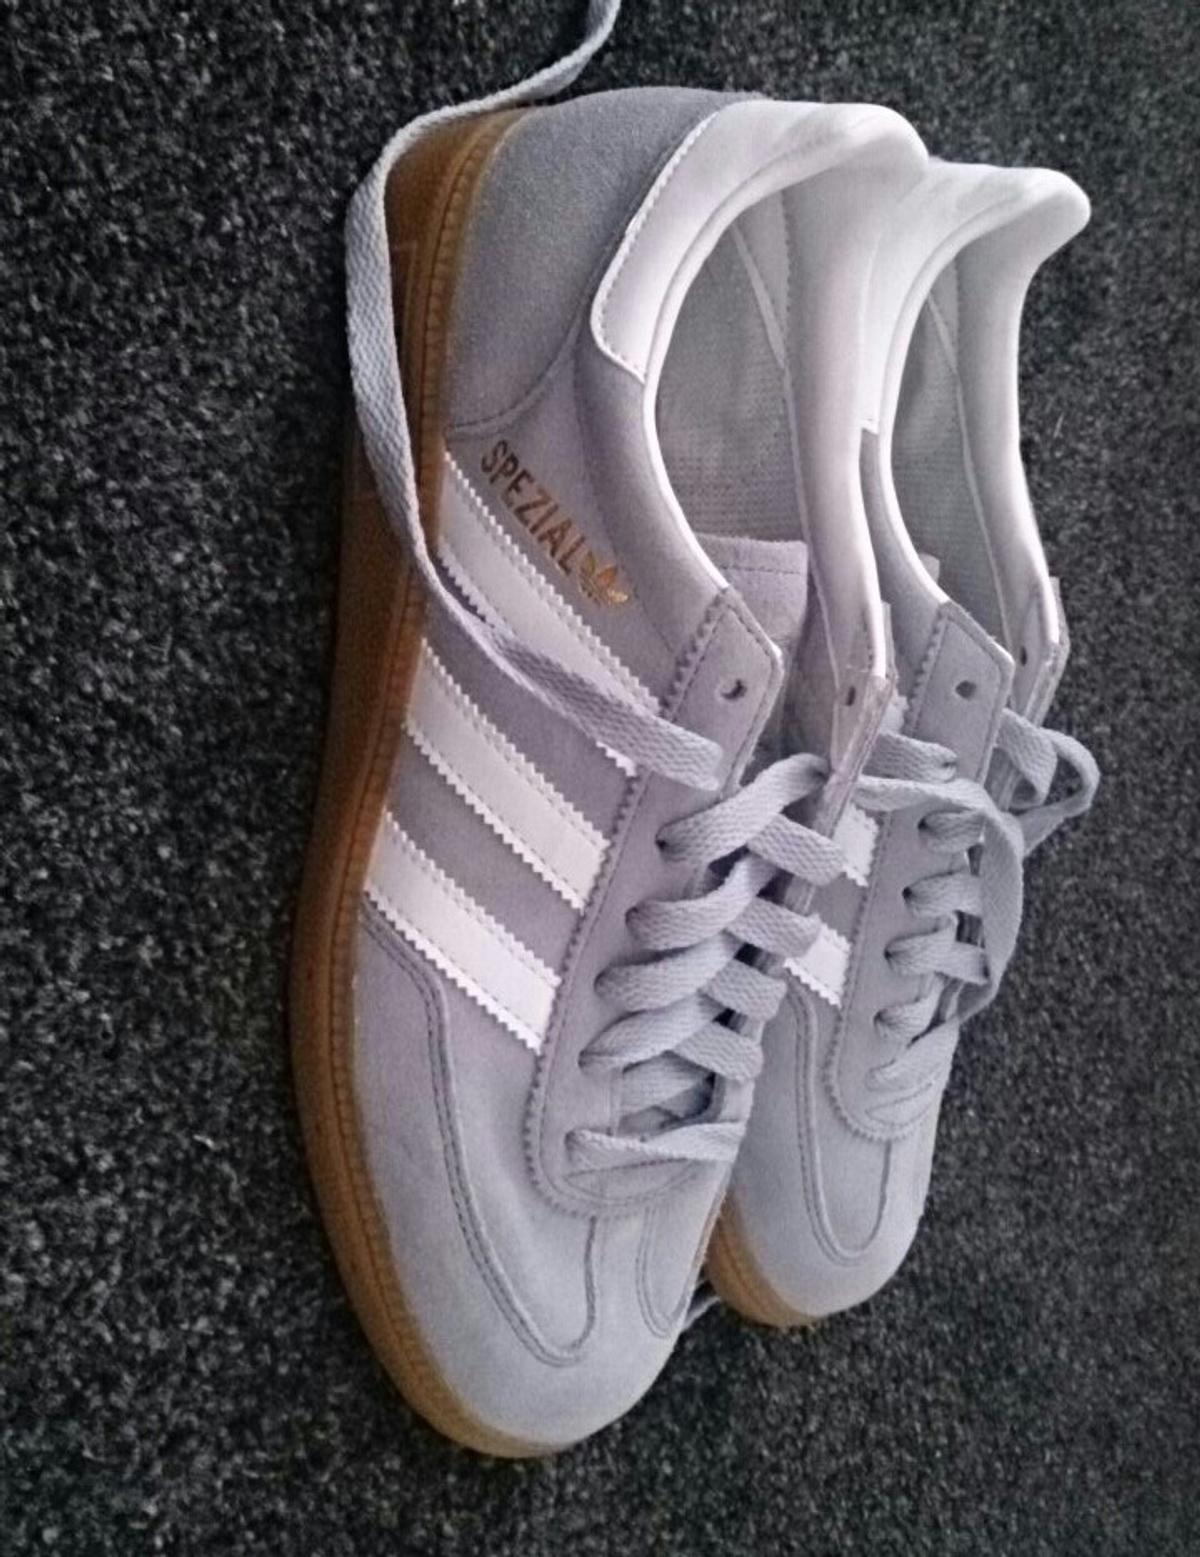 Size 6 Adidas spezial in SR5 Sunderland for £30.00 for sale